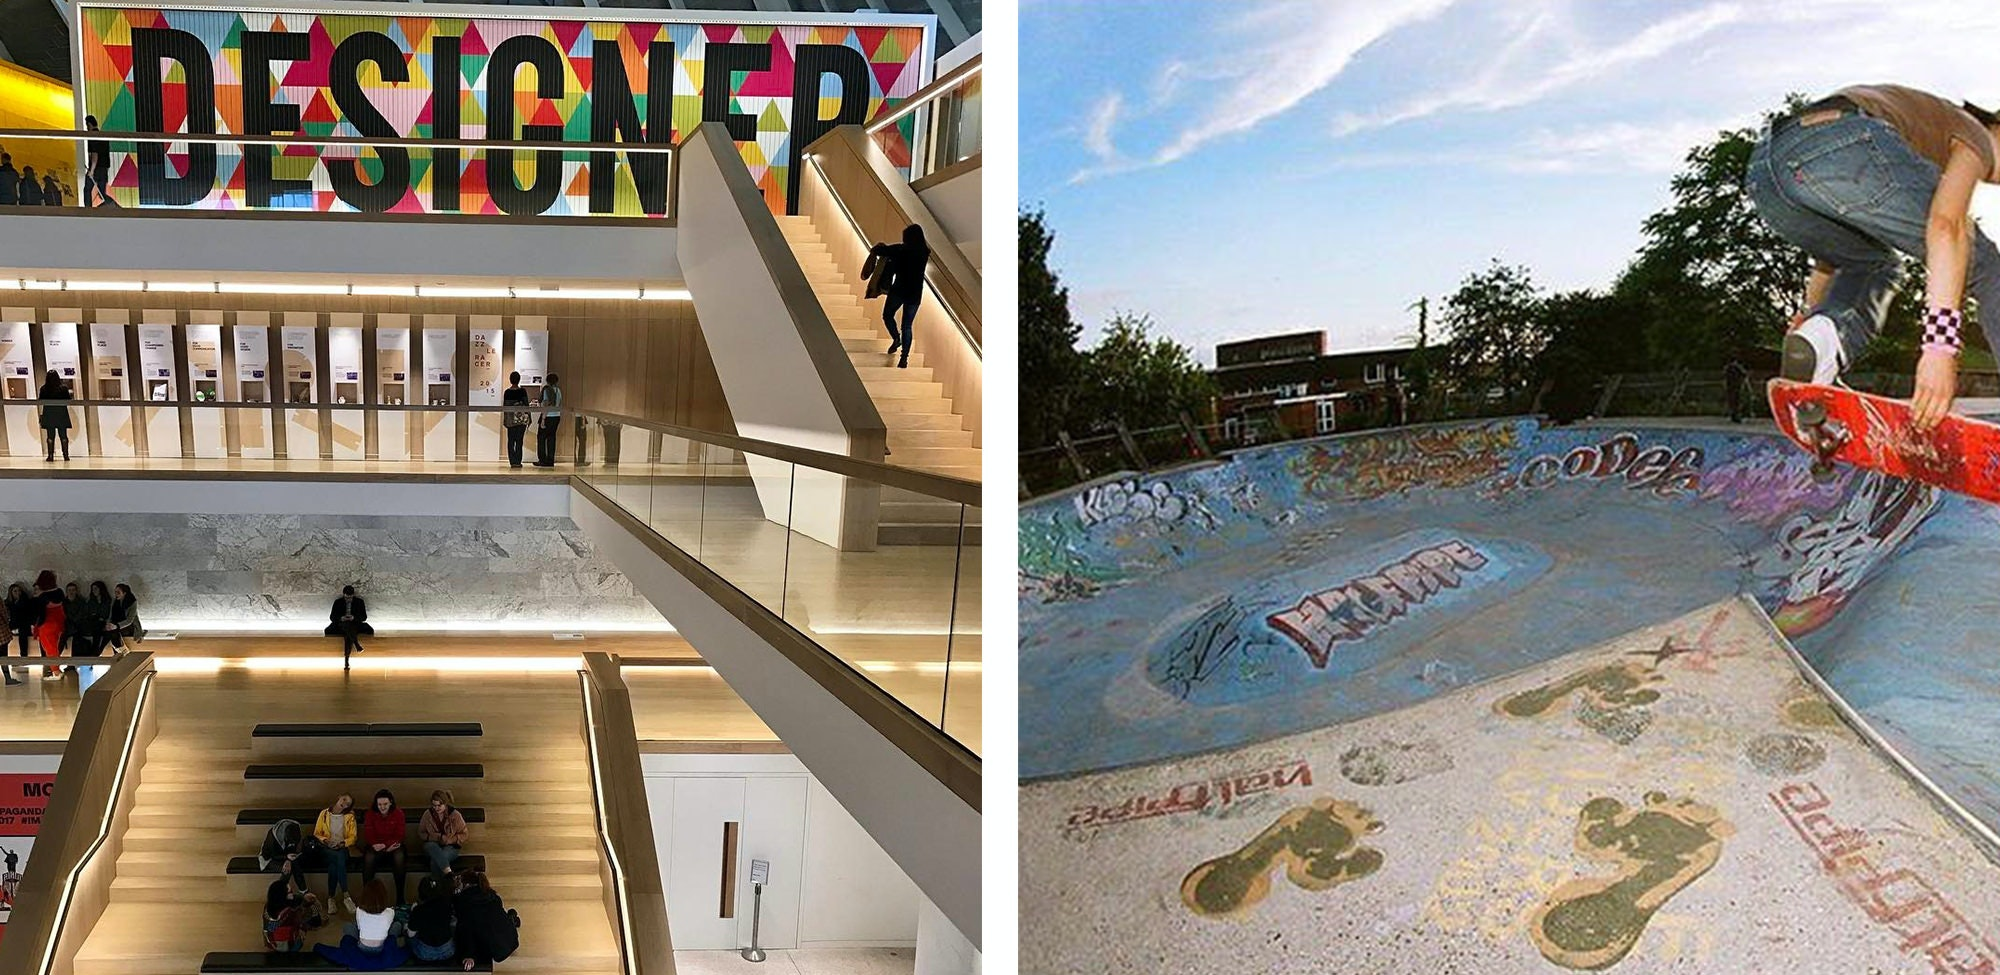 Teenagers can have a great time in London. Take them to the Design Museum or to the Meanwhile Gardens skate-park and they'll have a blast.